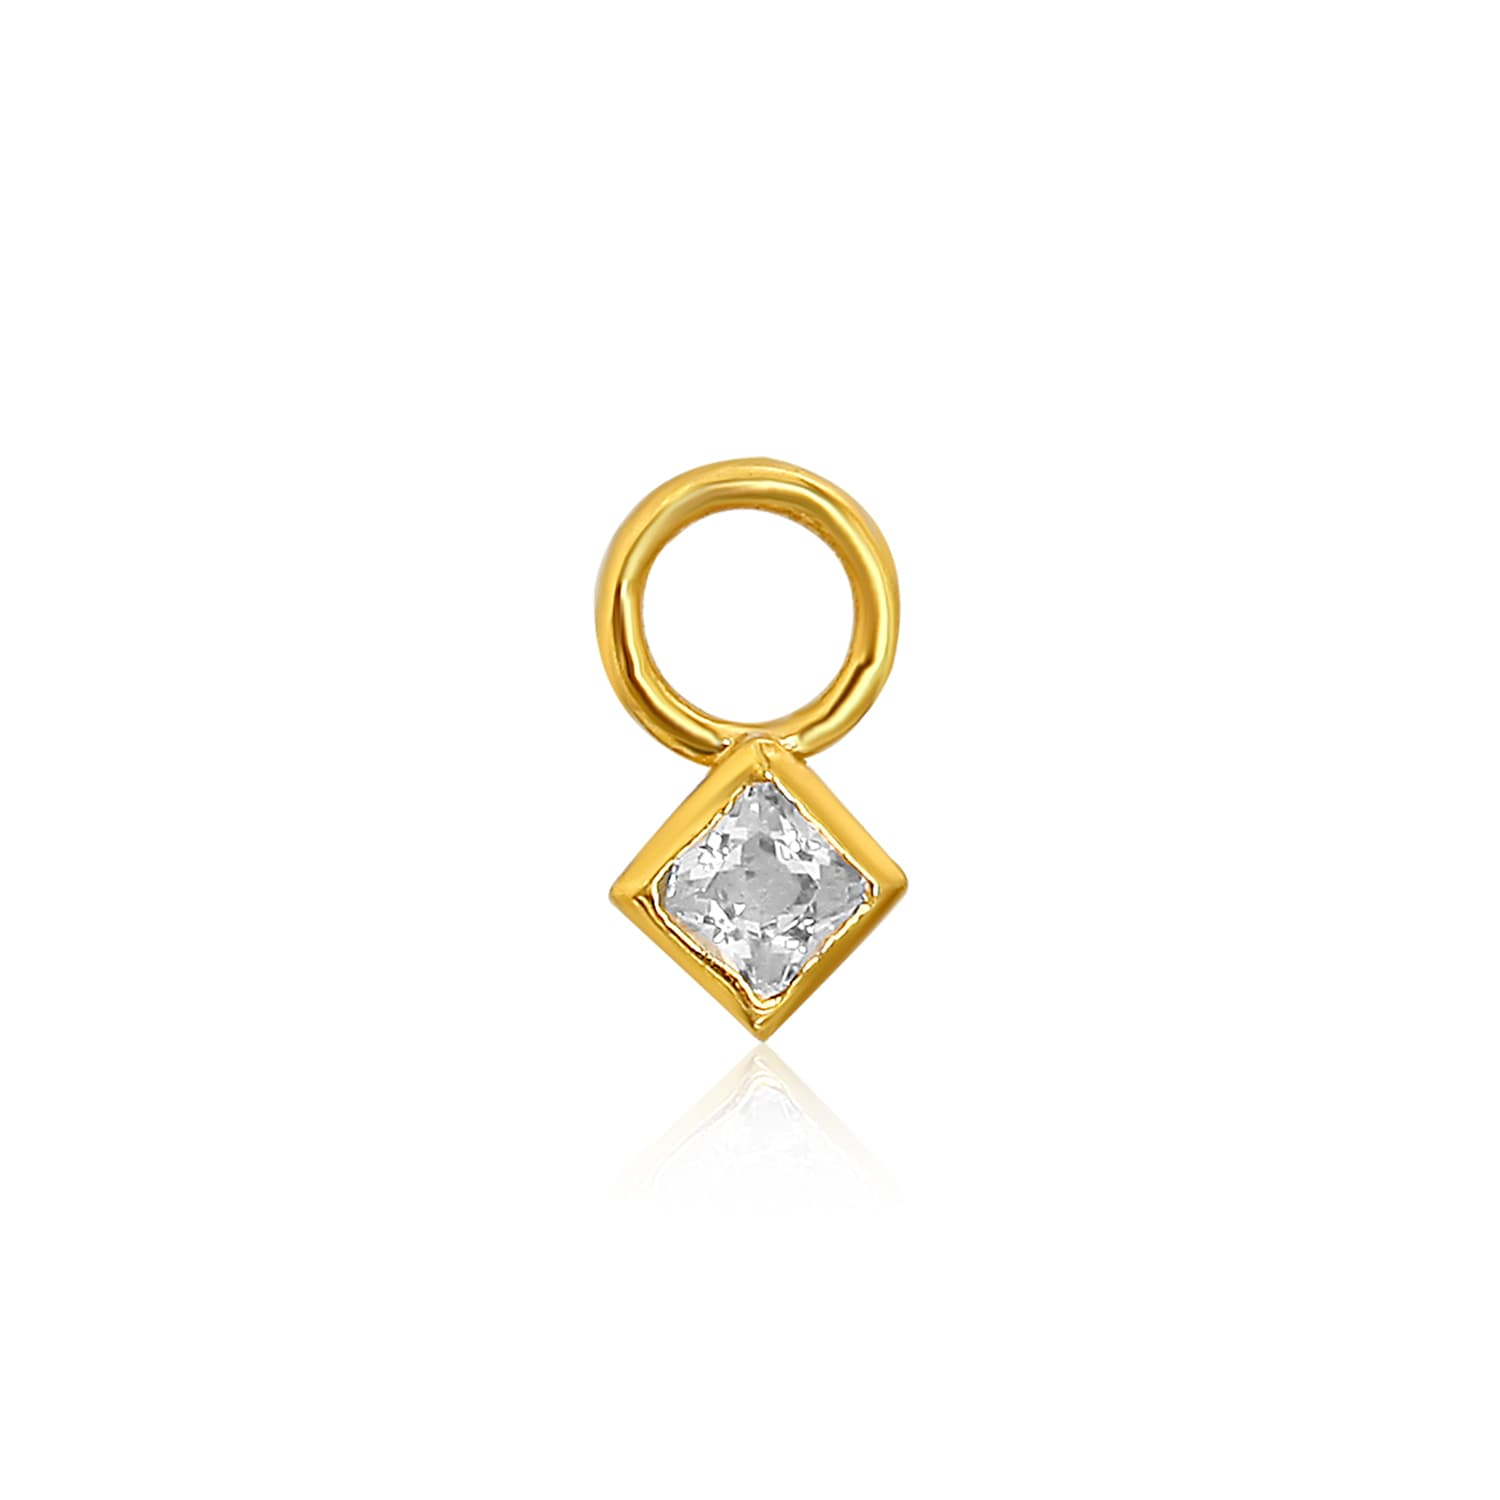 Real gold plated bracelet charms on silver